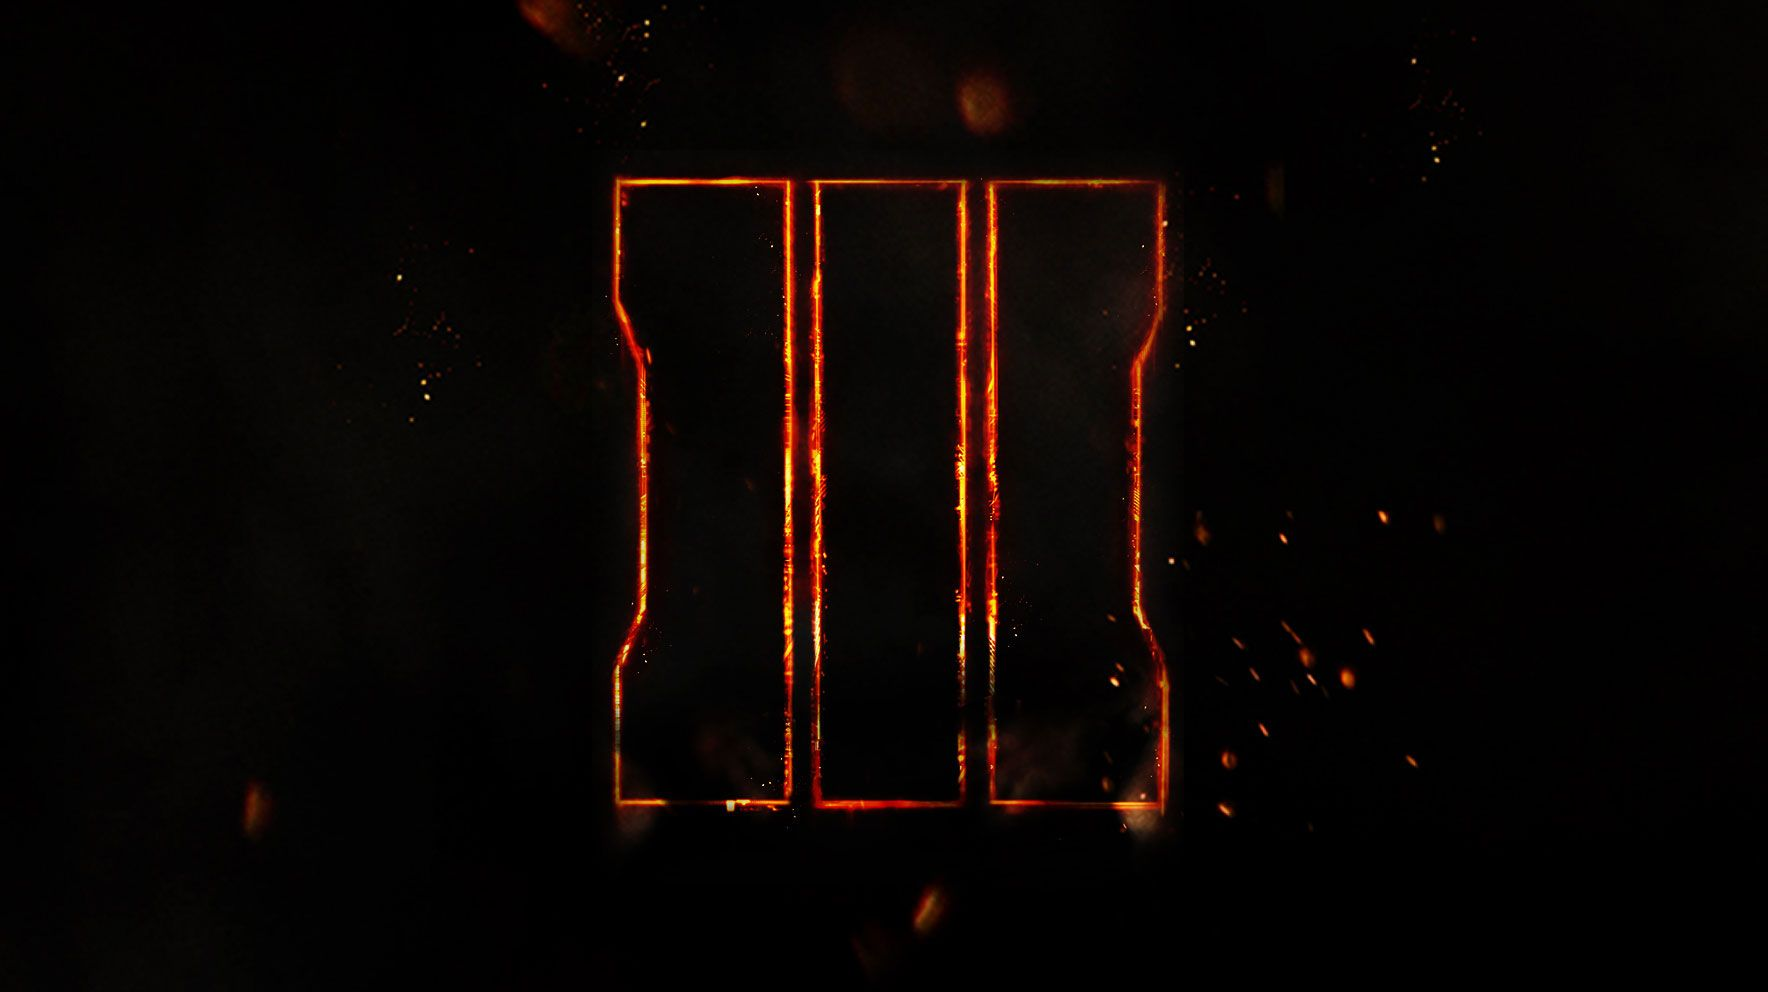 Image For Call Of Duty Black Ops Iii Cool Wallpapers Hd For